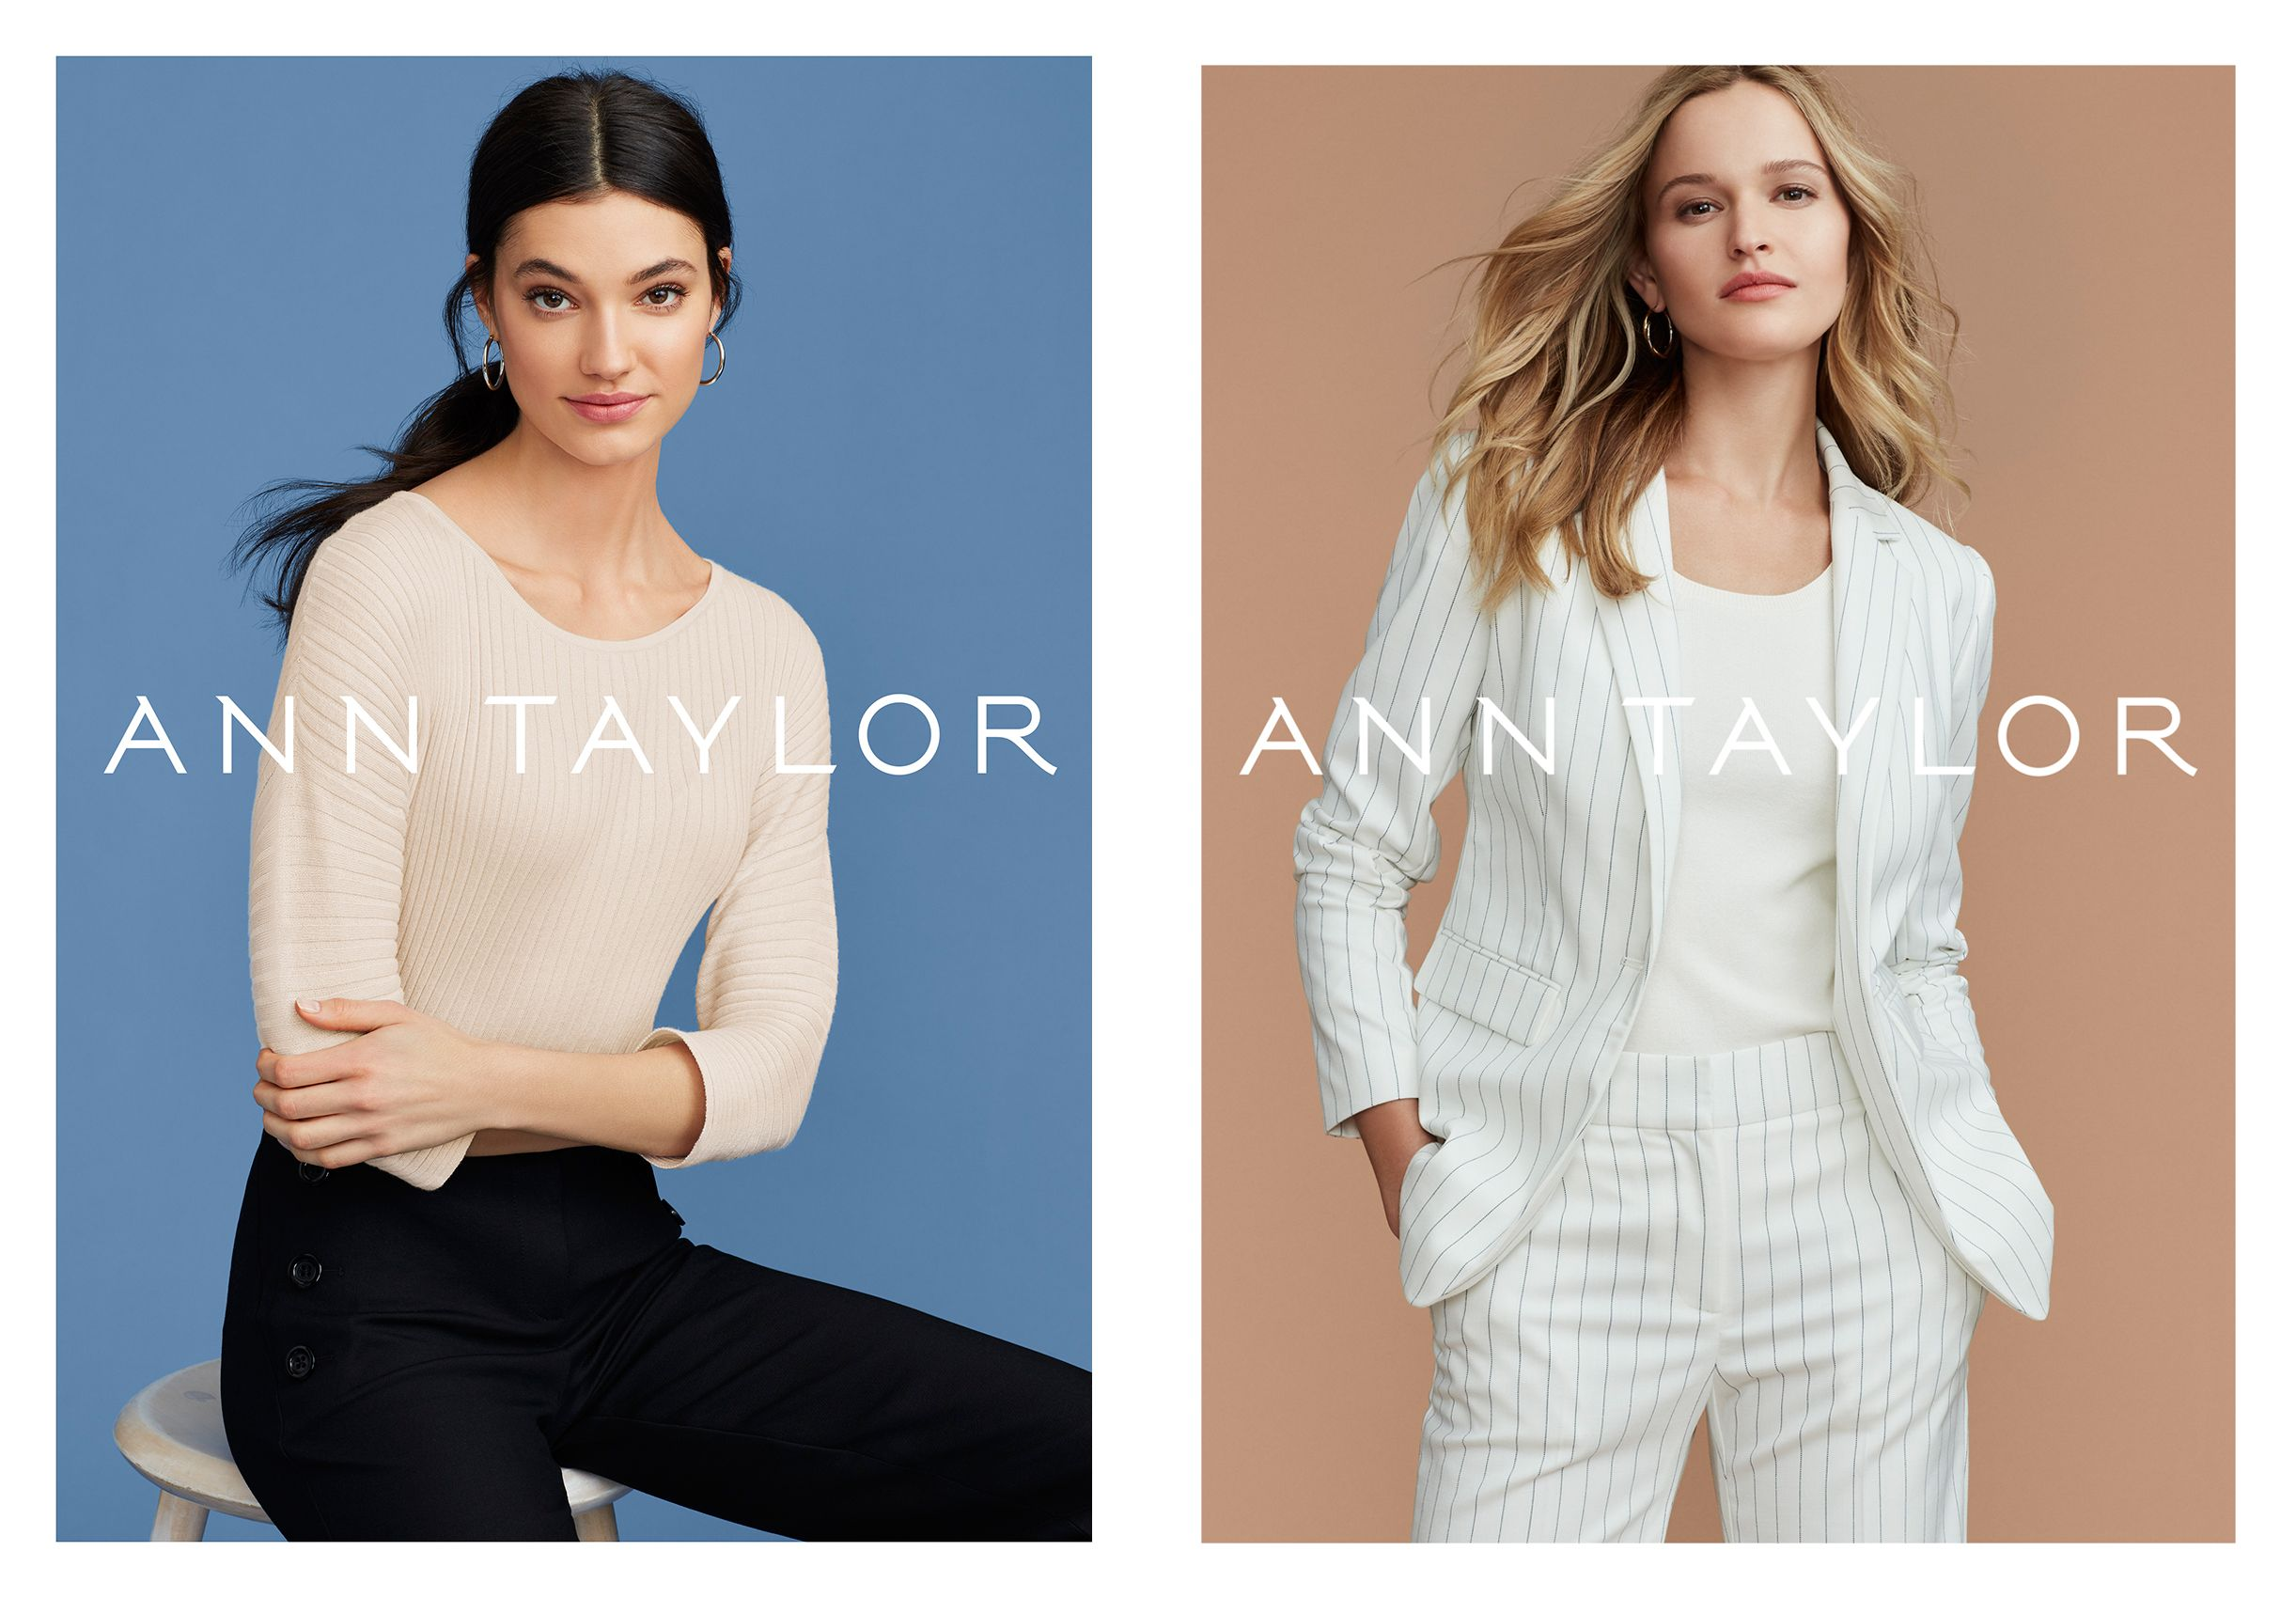 Ann Taylor Spring Campaign 2020